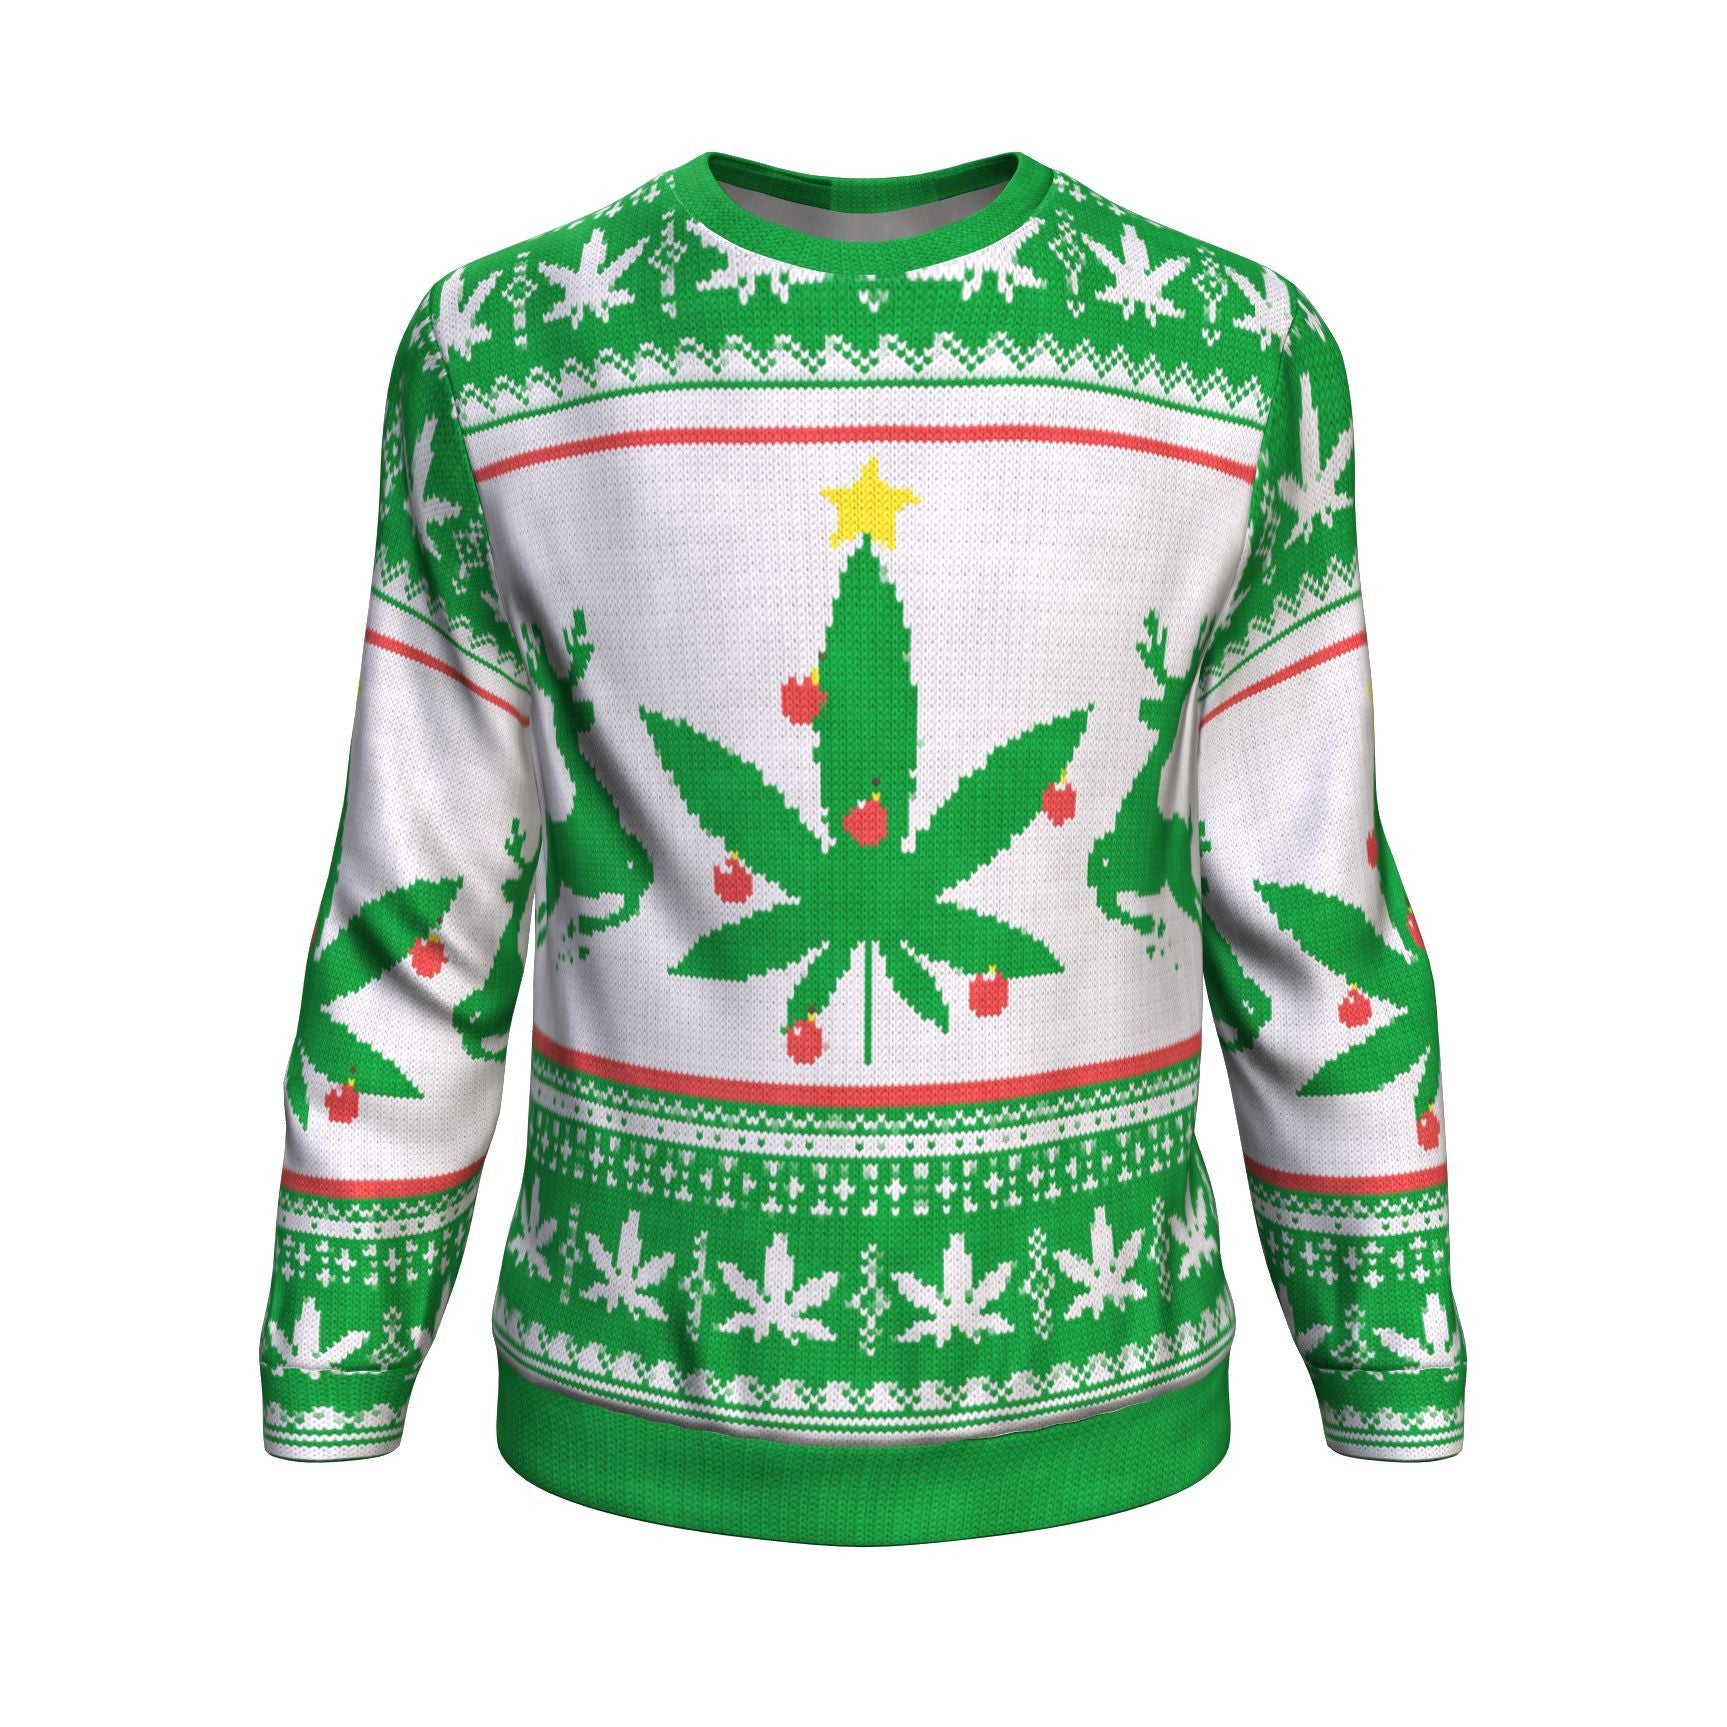 Buy Weed christmas tree ugly christmas sweater - Familyloves hoodies t-shirt jacket mug cheapest free shipping 50% off